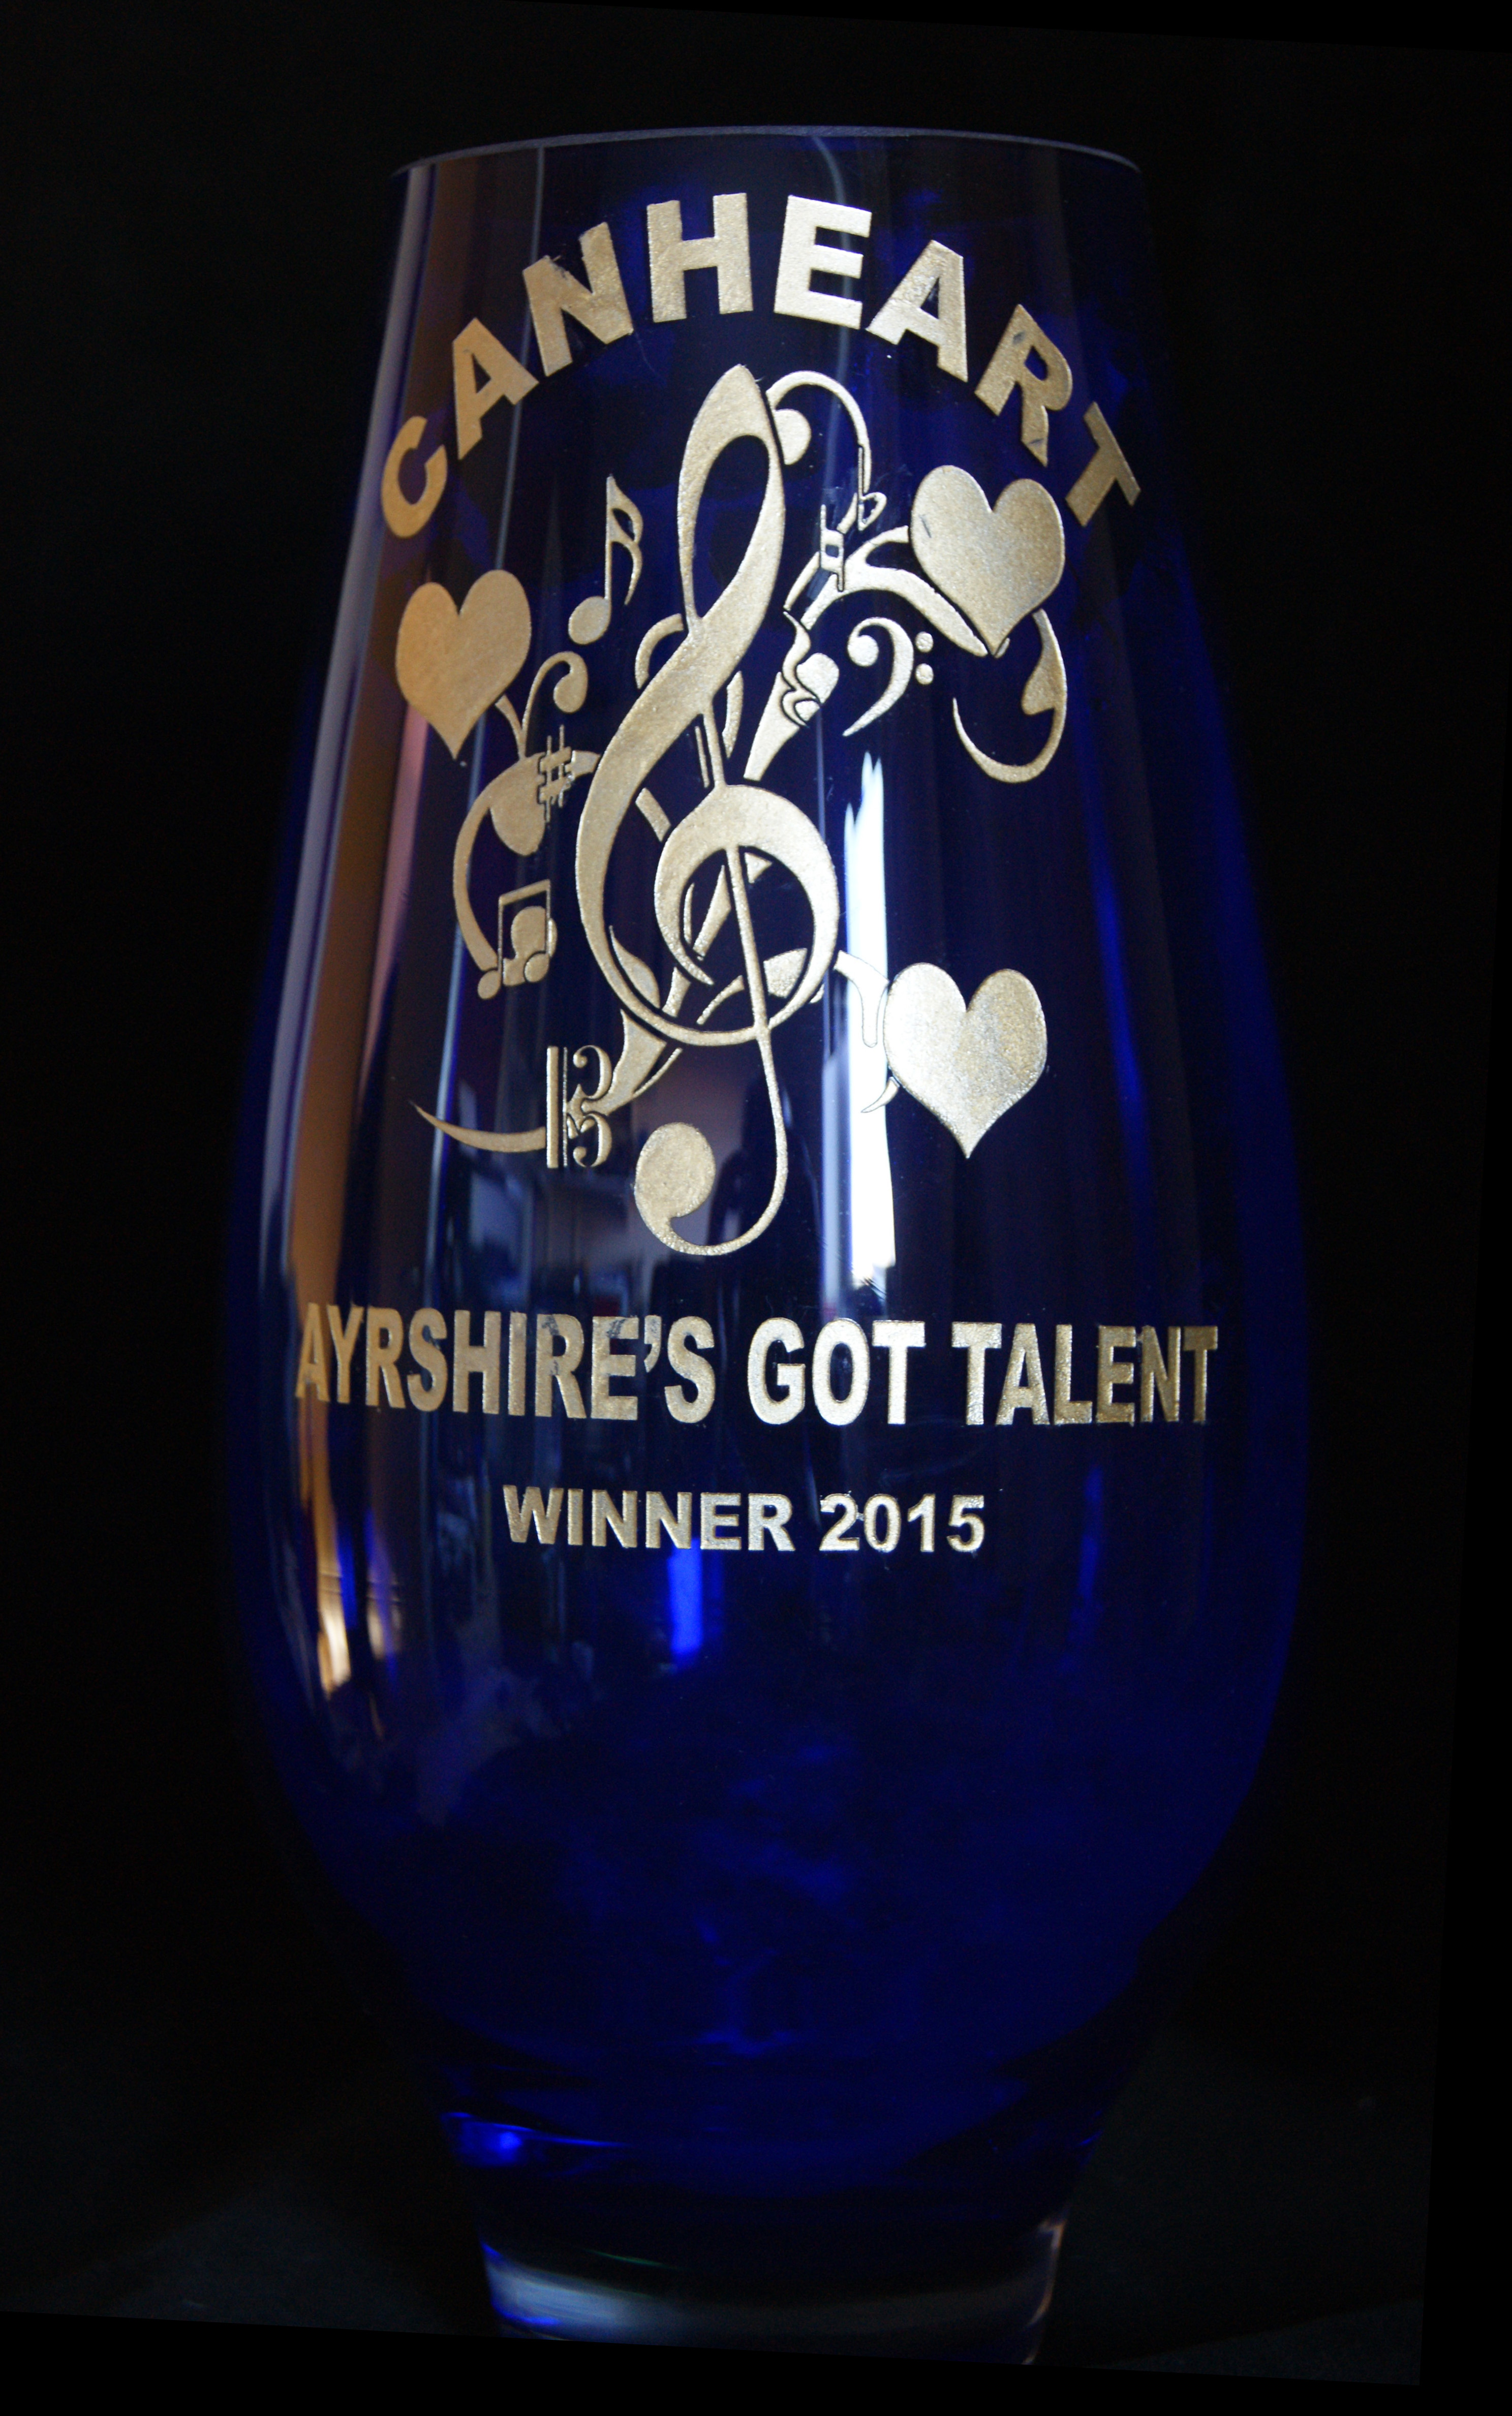 A deep blue vase with the CANHEART logo and Ayrshire's Got Talent engraved then infilled with gold